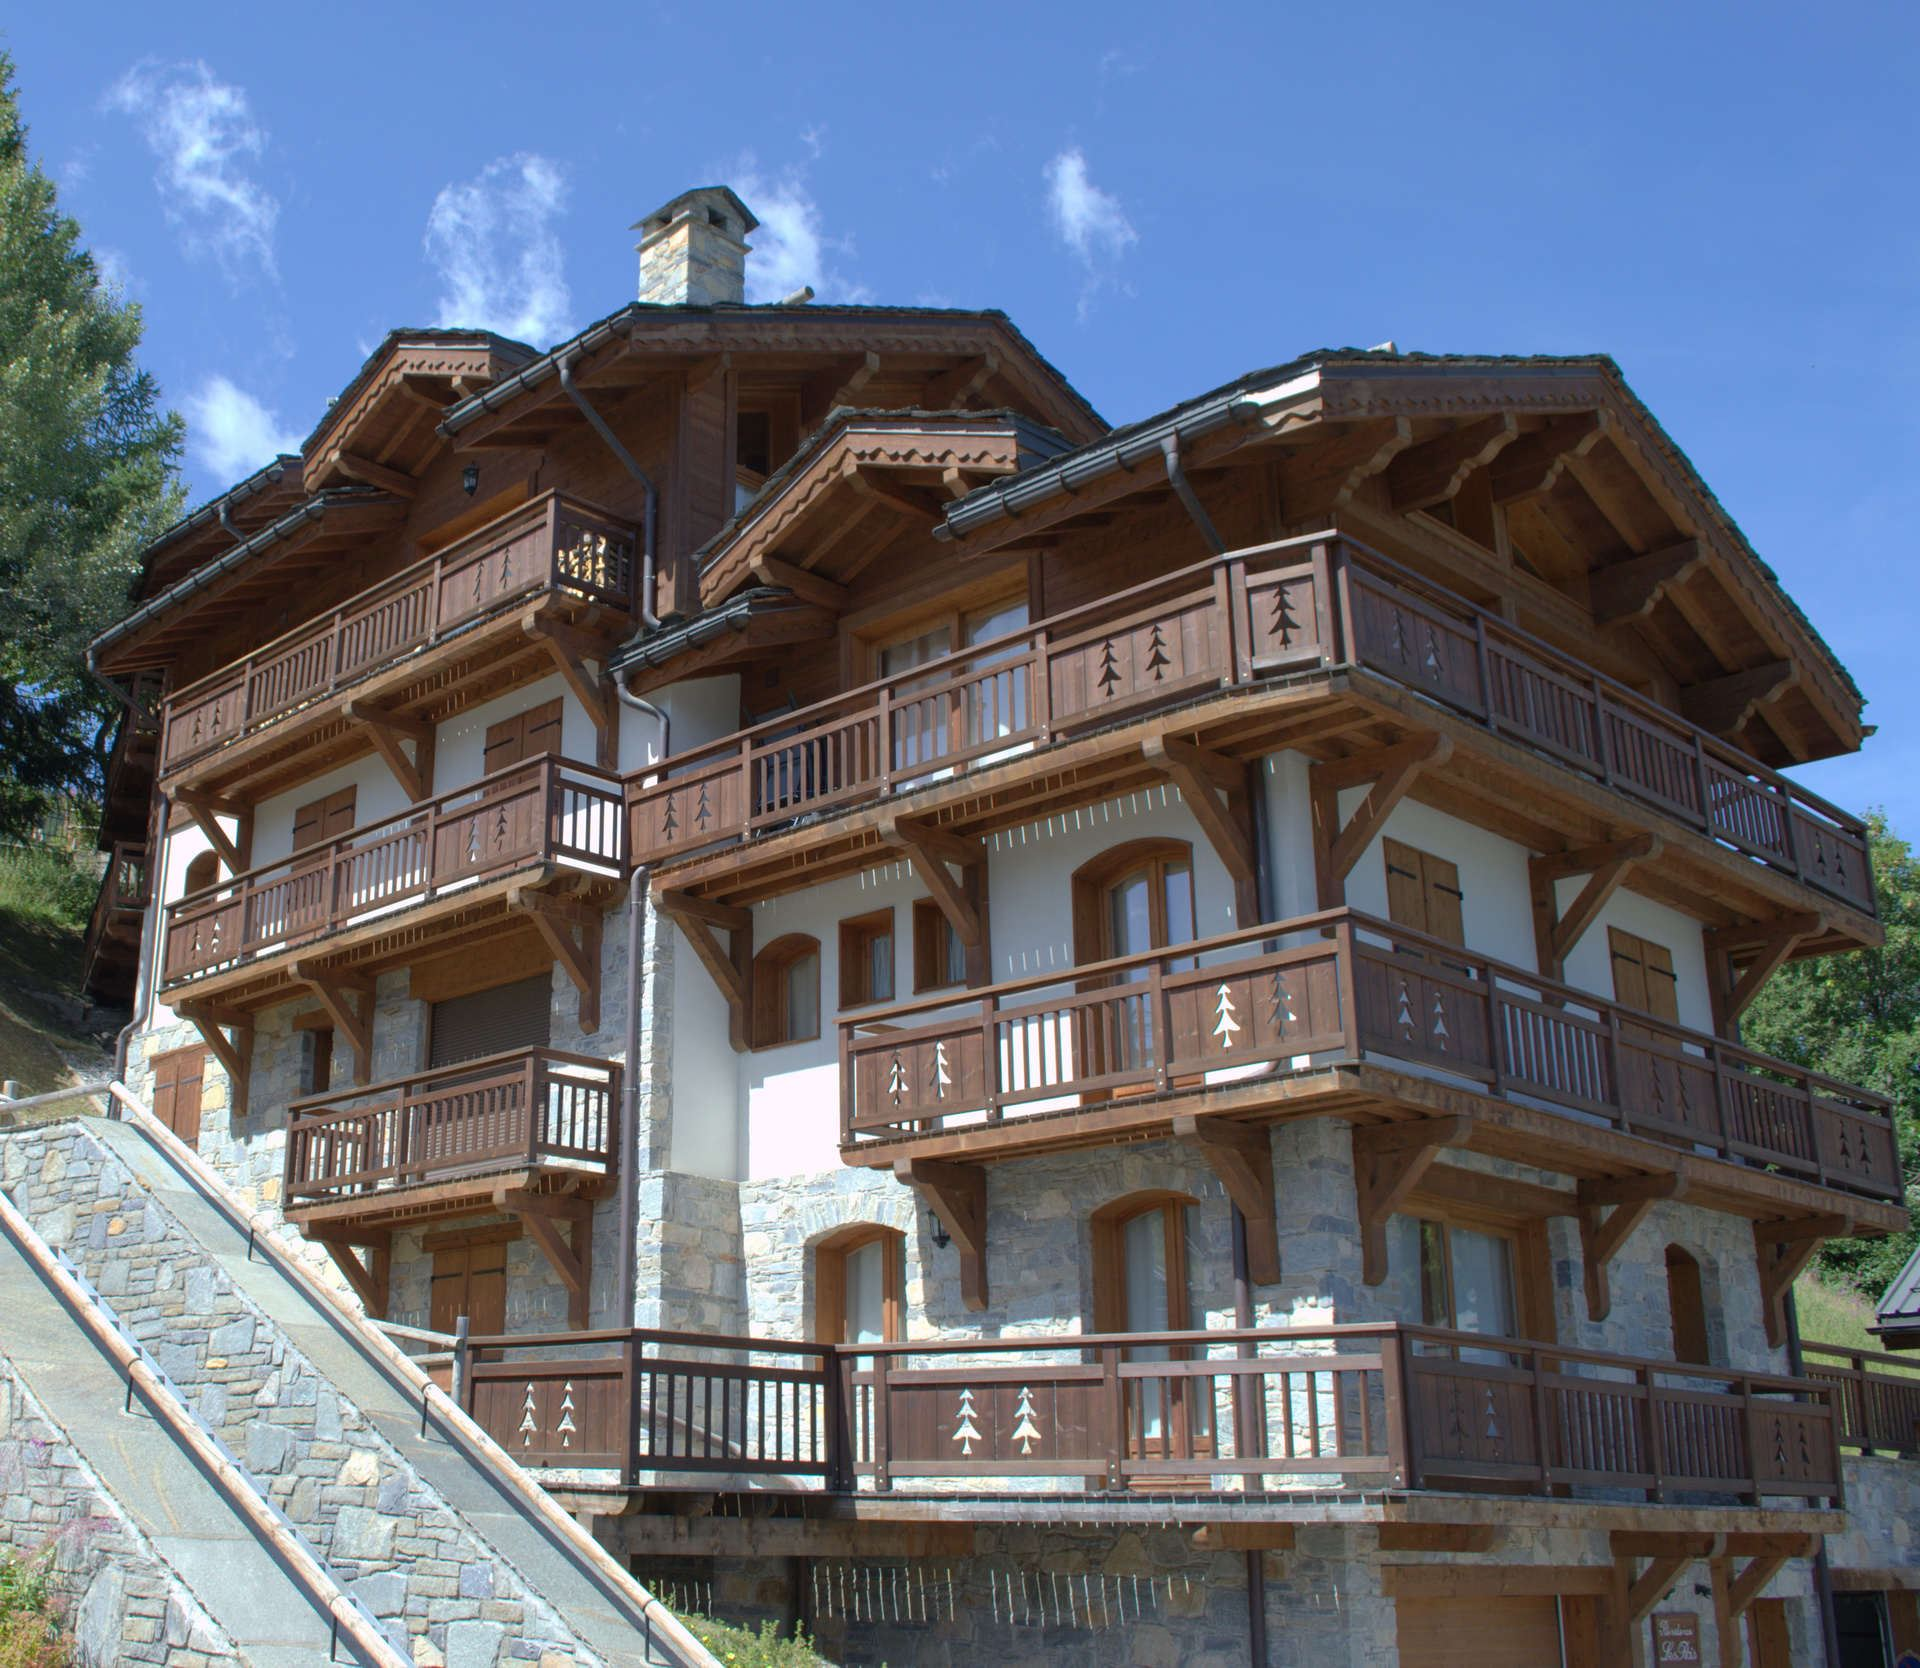 4 rooms, 6 people / Chalet les Rois (mountain of dream)